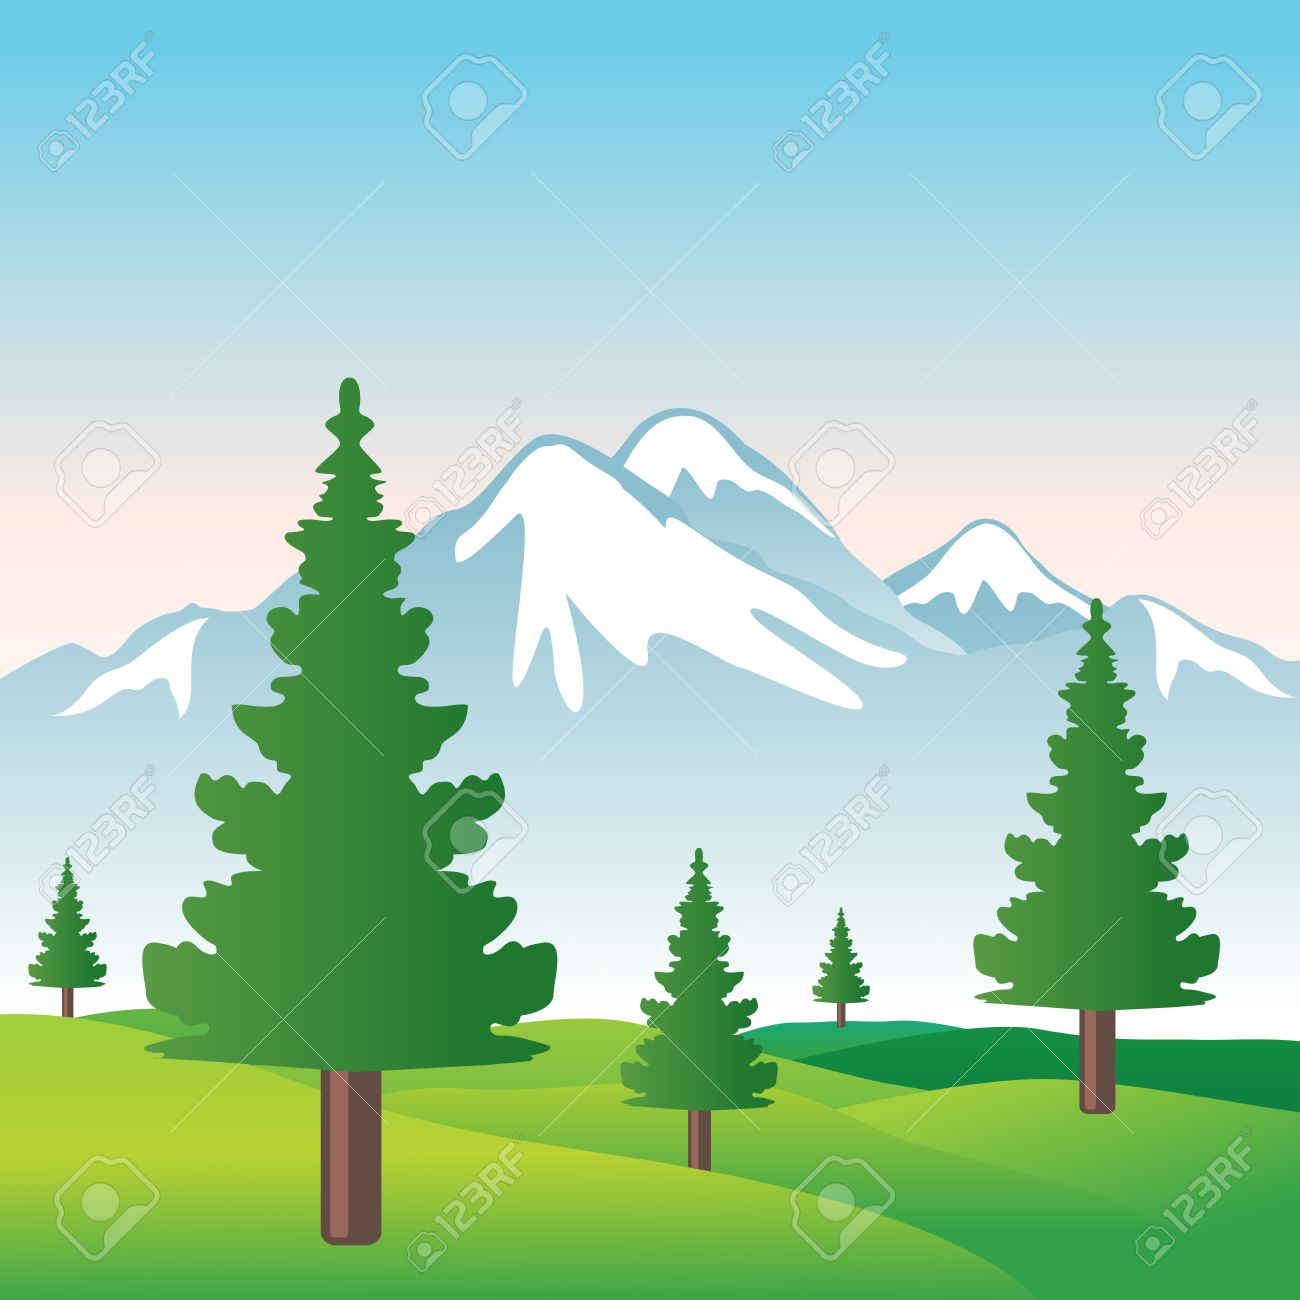 Mountain Tree Cliparts Free Download Clip Art.